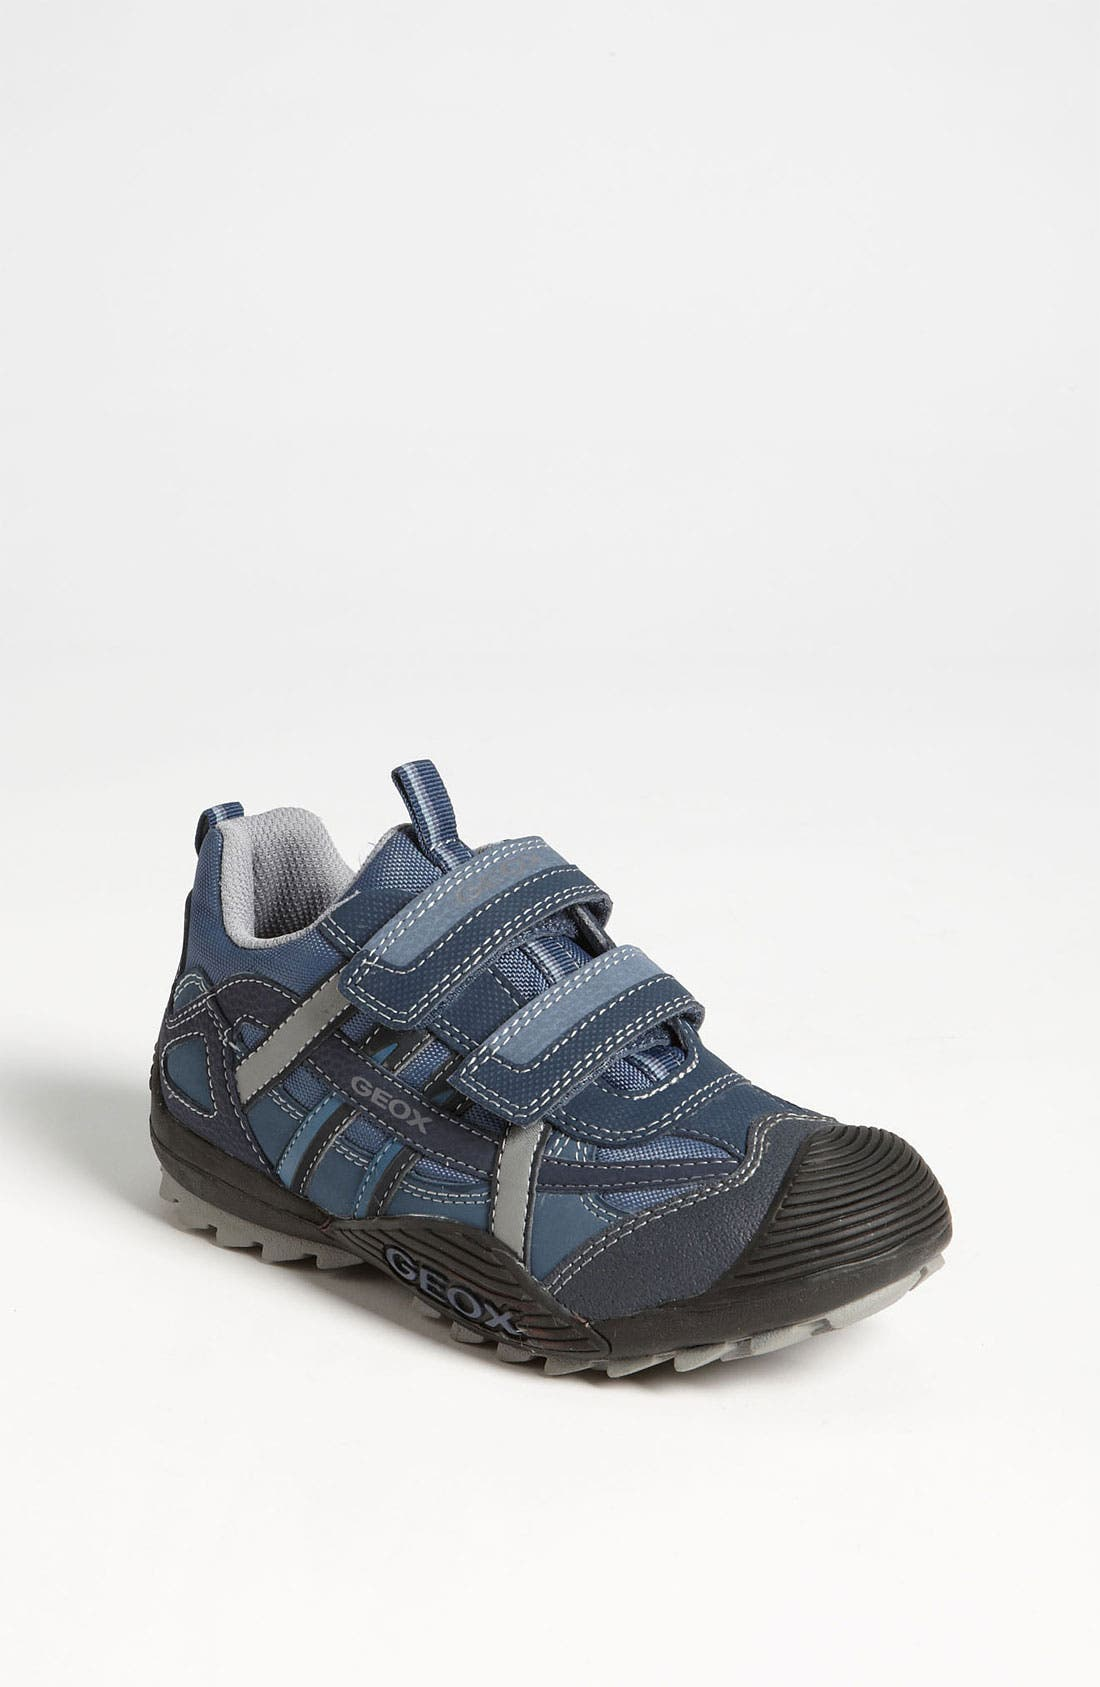 Main Image - Geox 'Savage' Sneaker (Walker, Toddler, Little Kid & Big Kid)